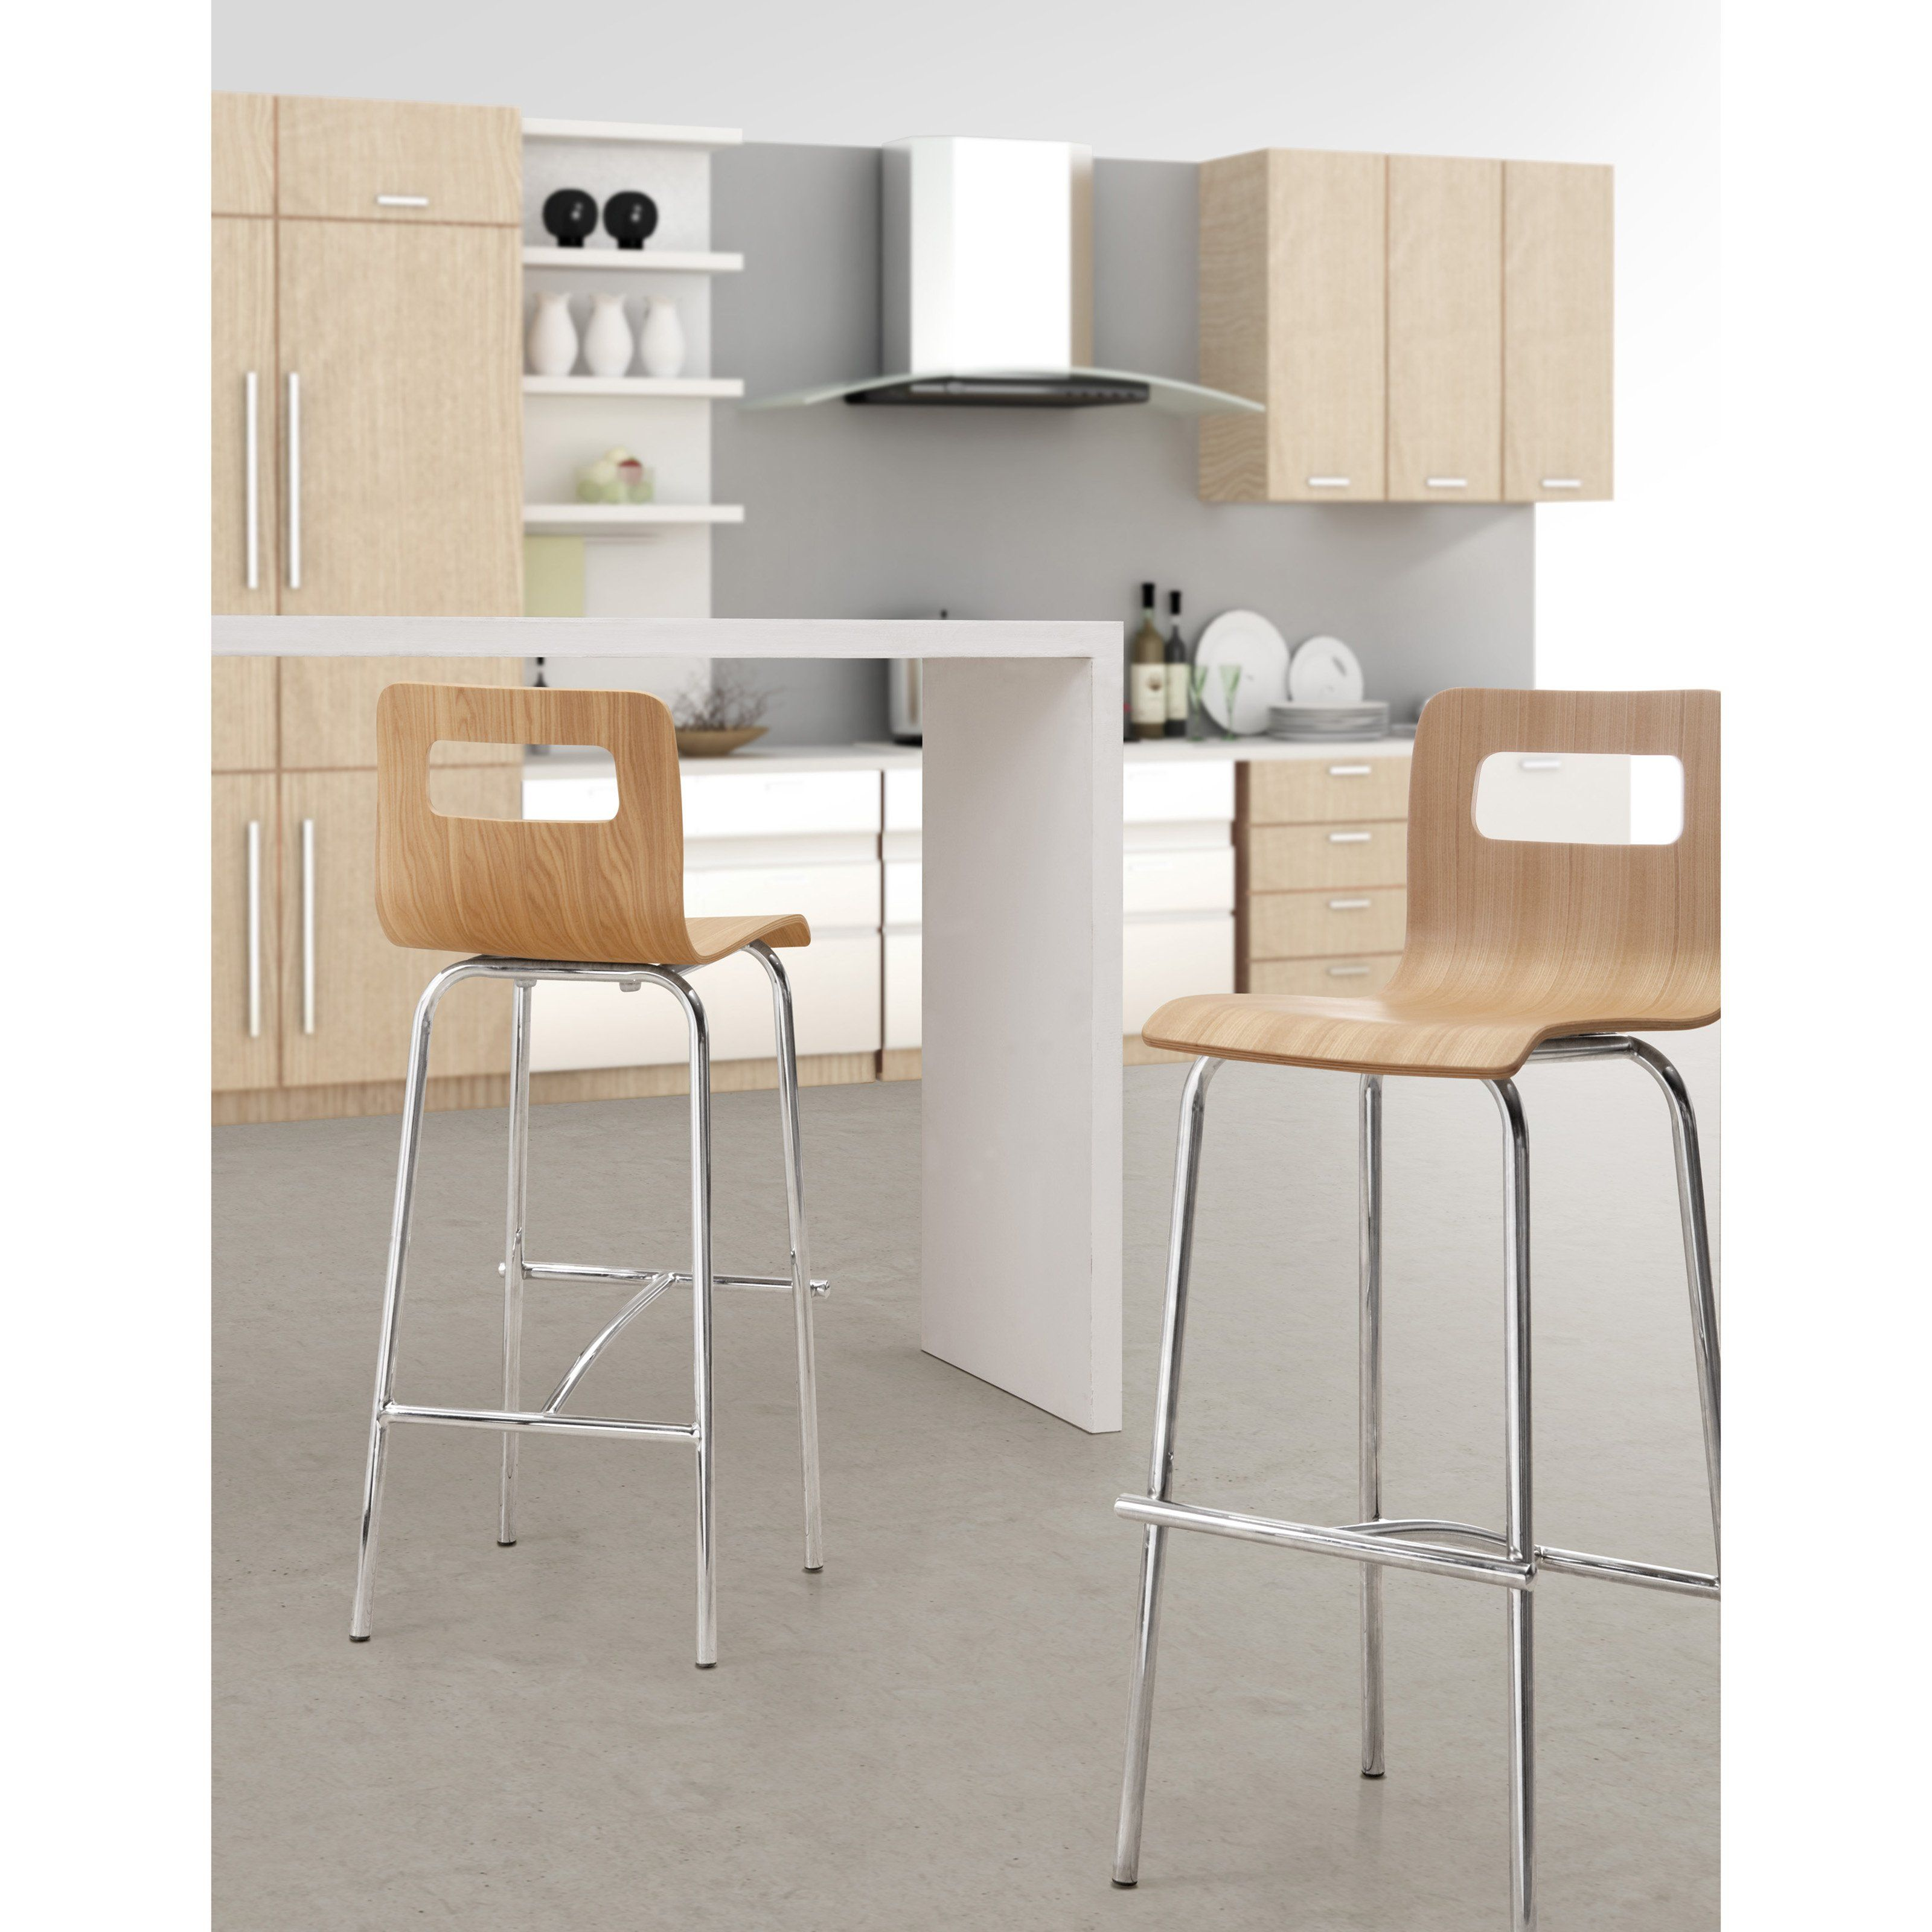 Zuo Modern Escape 30 in Bar Stools Living Room